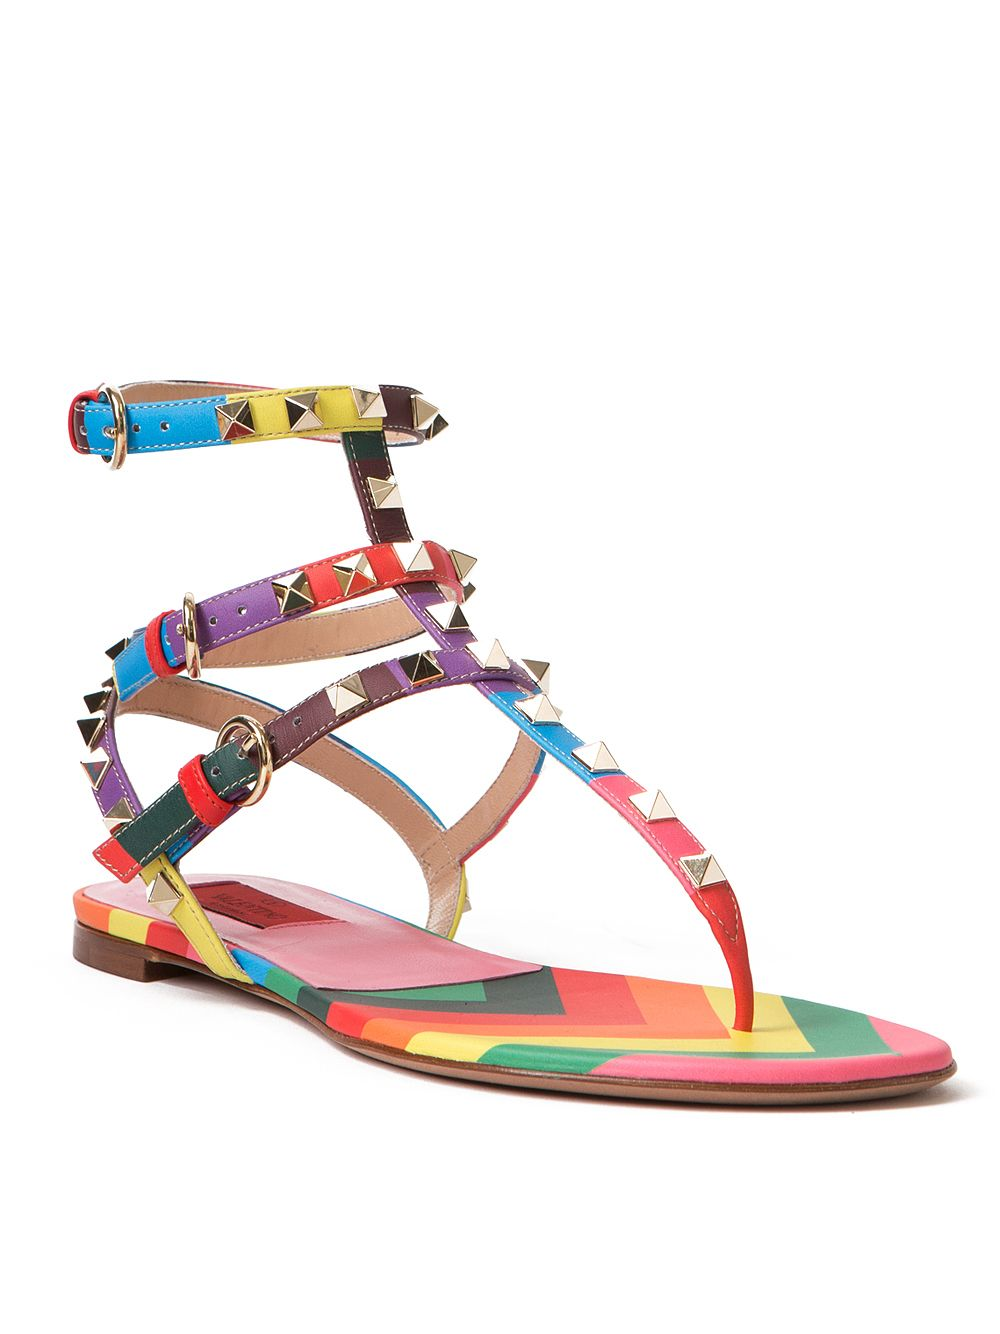 ec1365261b92 Rainbow Rockstud Gladiator Sandals from Valentino. Gladiator leather sandals  feature a T-strap design